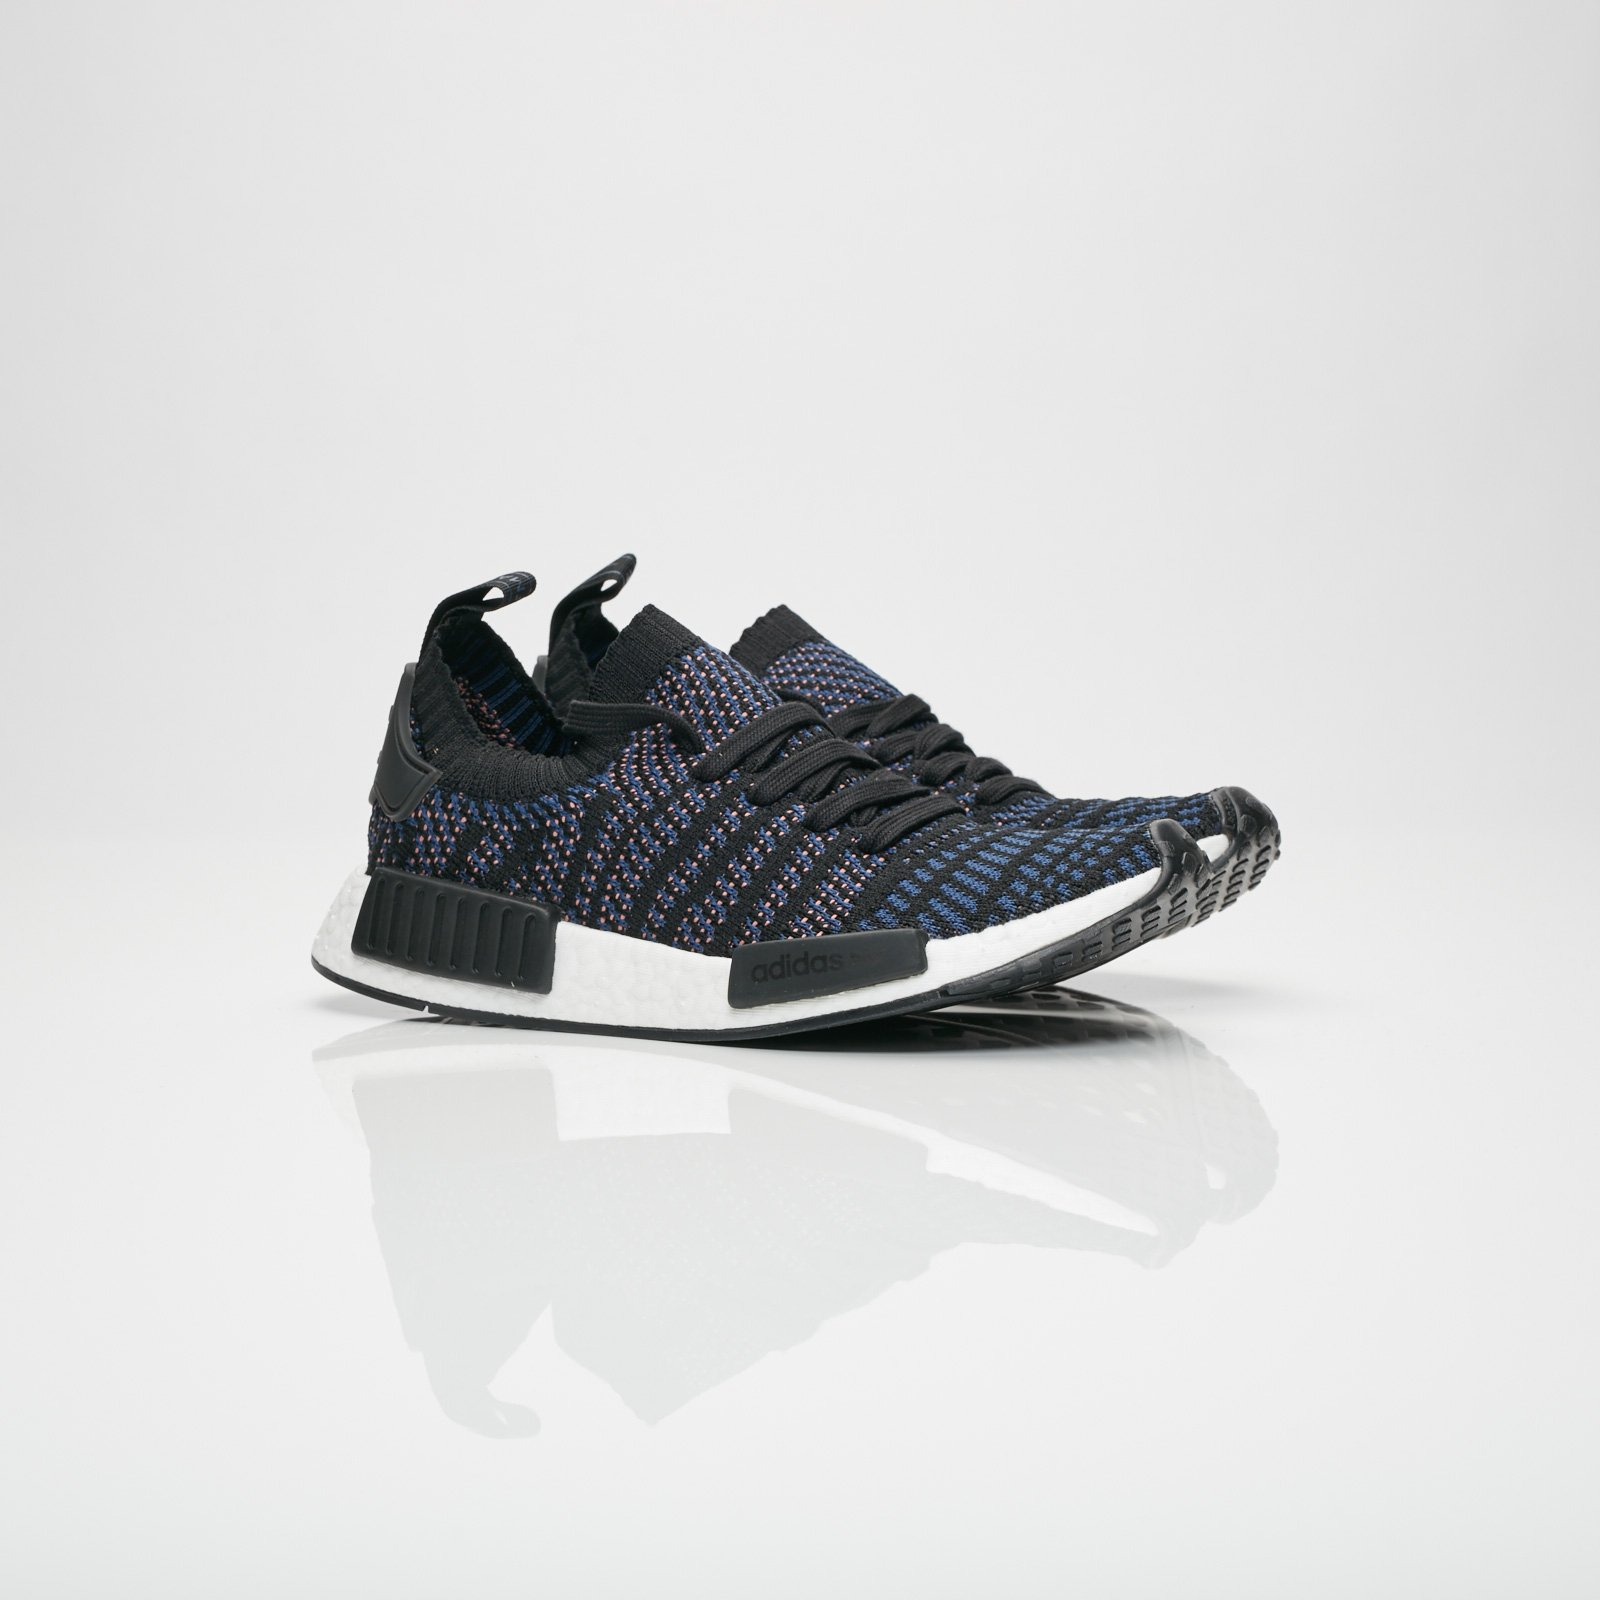 check out 8f797 c7414 adidas NMD R1 STLT PK W - Ac8326 - Sneakersnstuff | sneakers ...